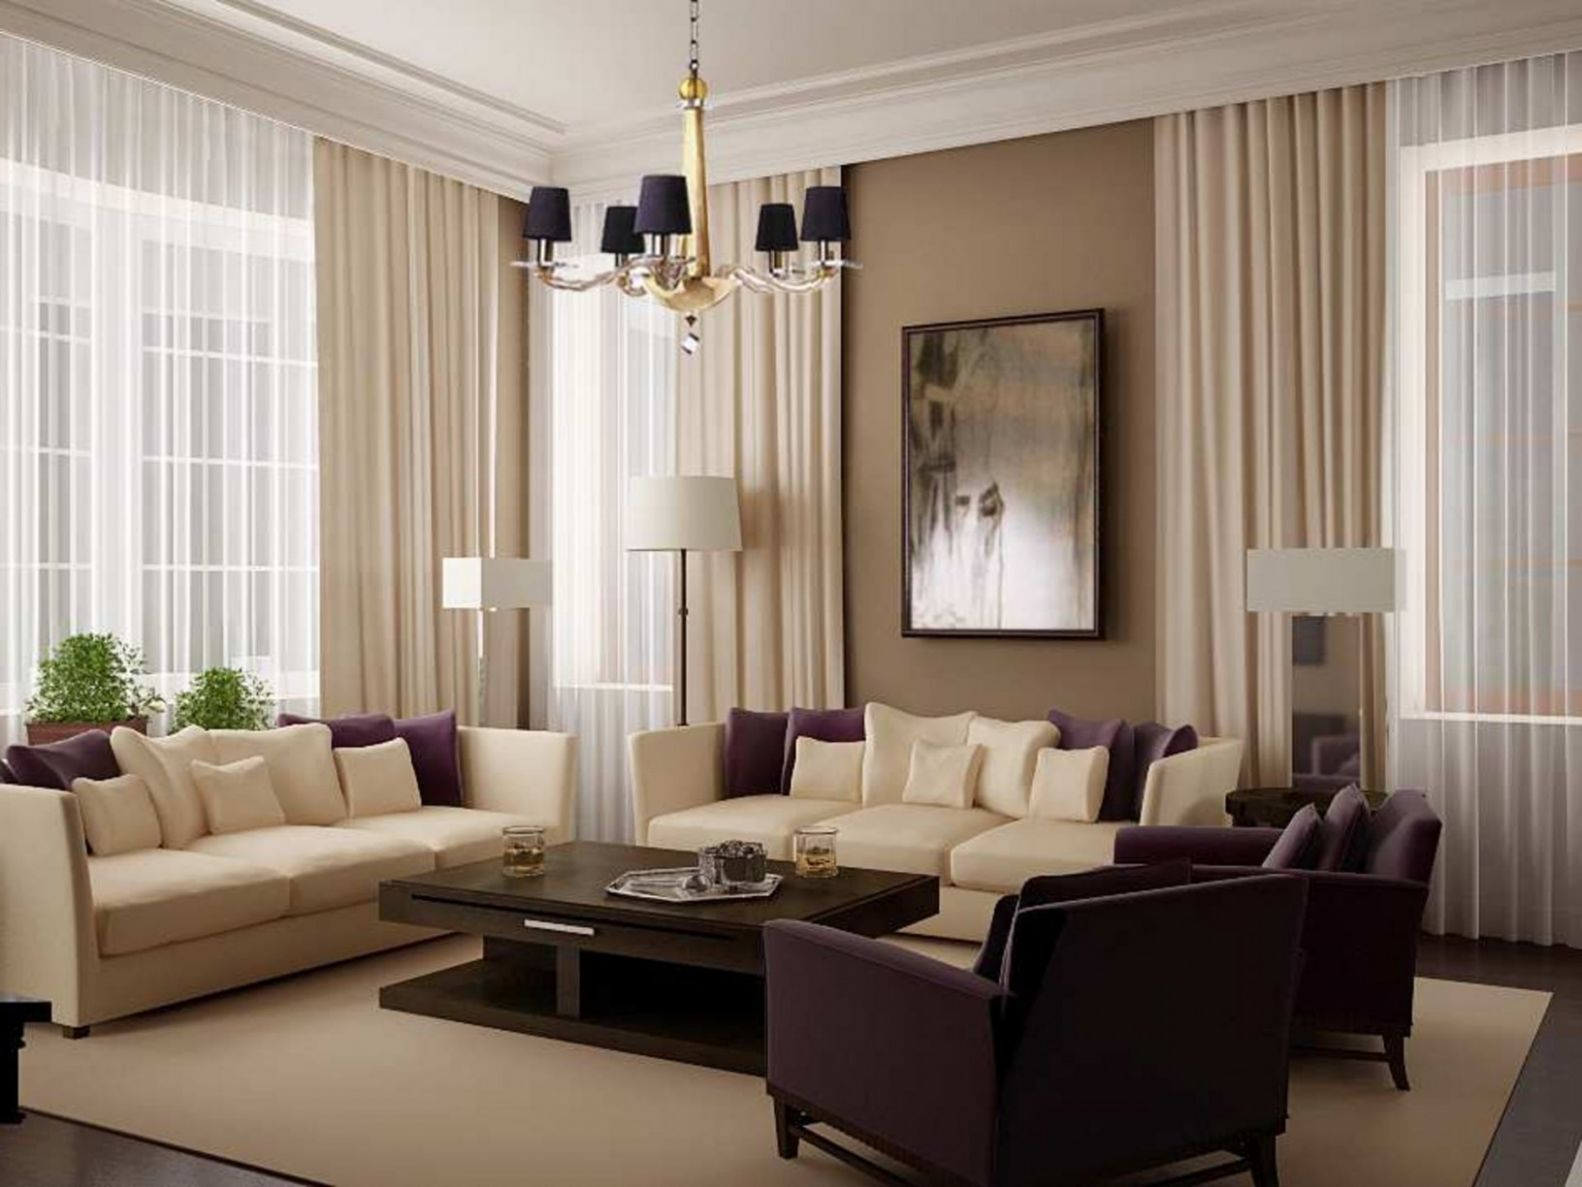 Light Brown Living Room Ideas White Curtain Tan Wall Color Cream ..